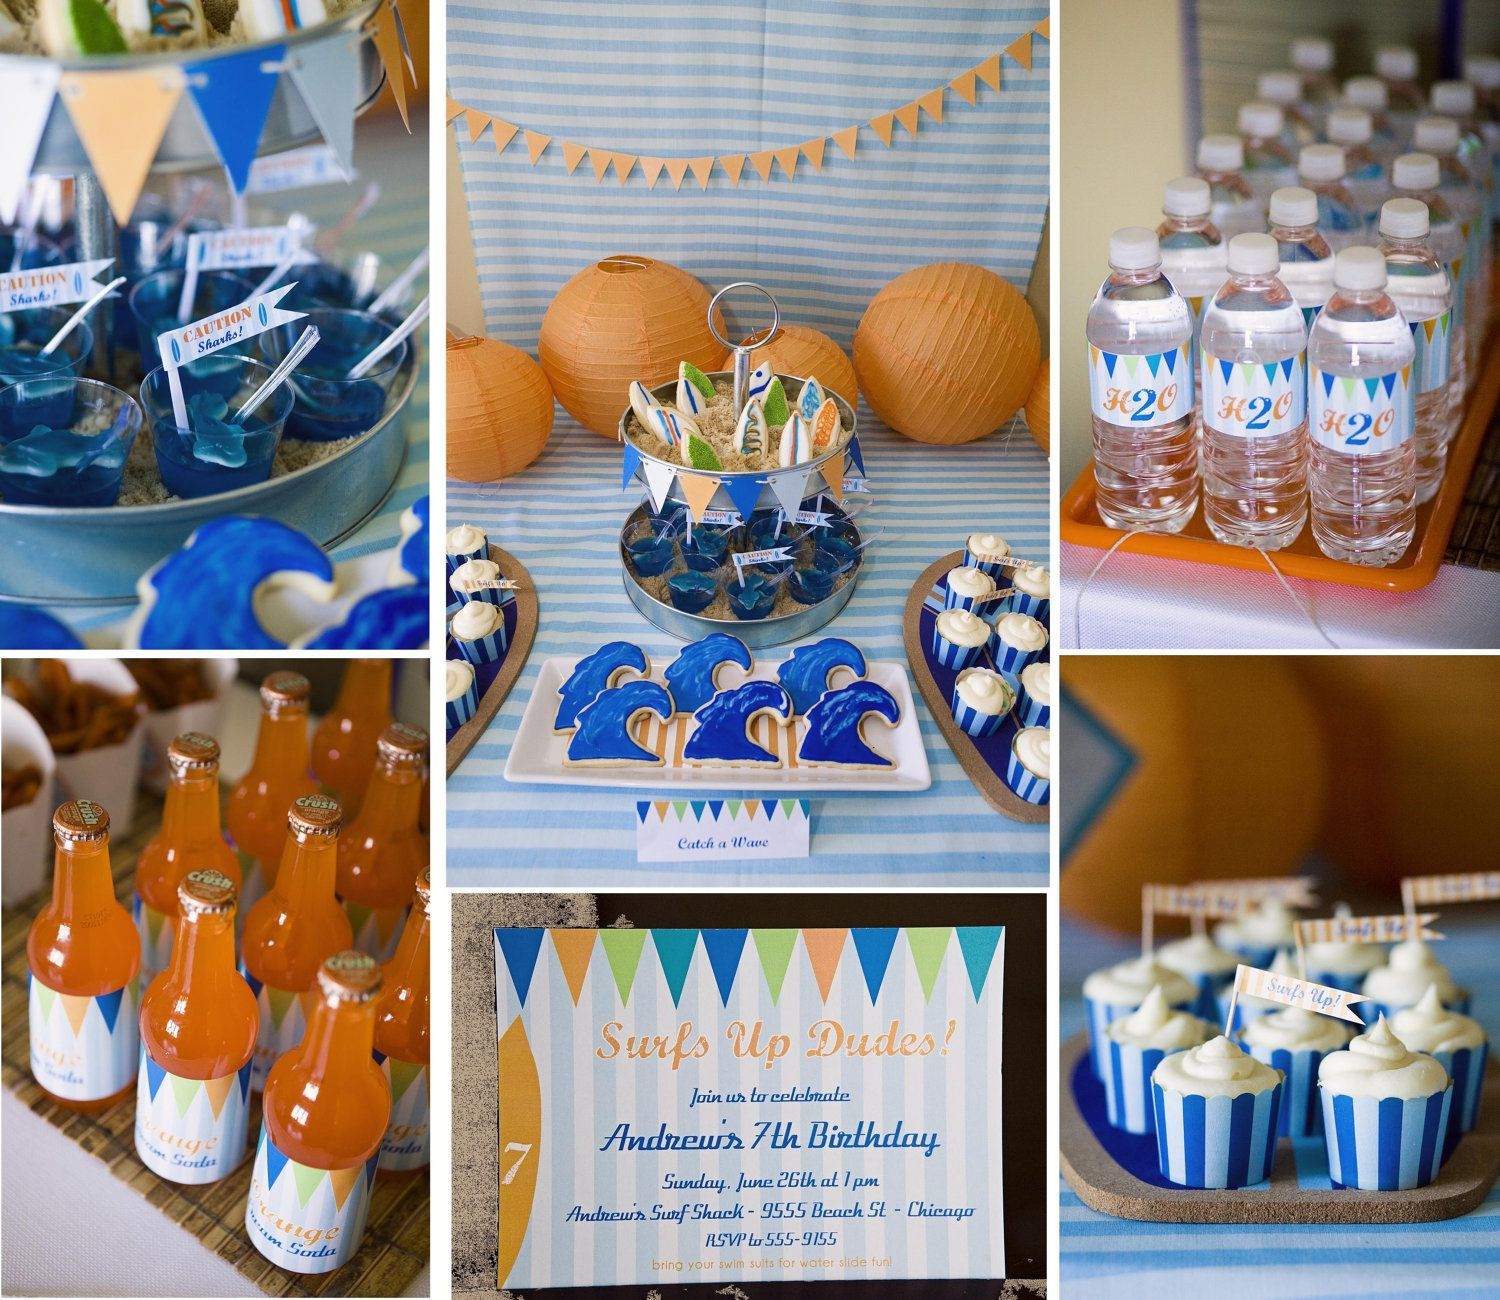 Beach party table decorations surfer dude printable party collection  invites banner bottle